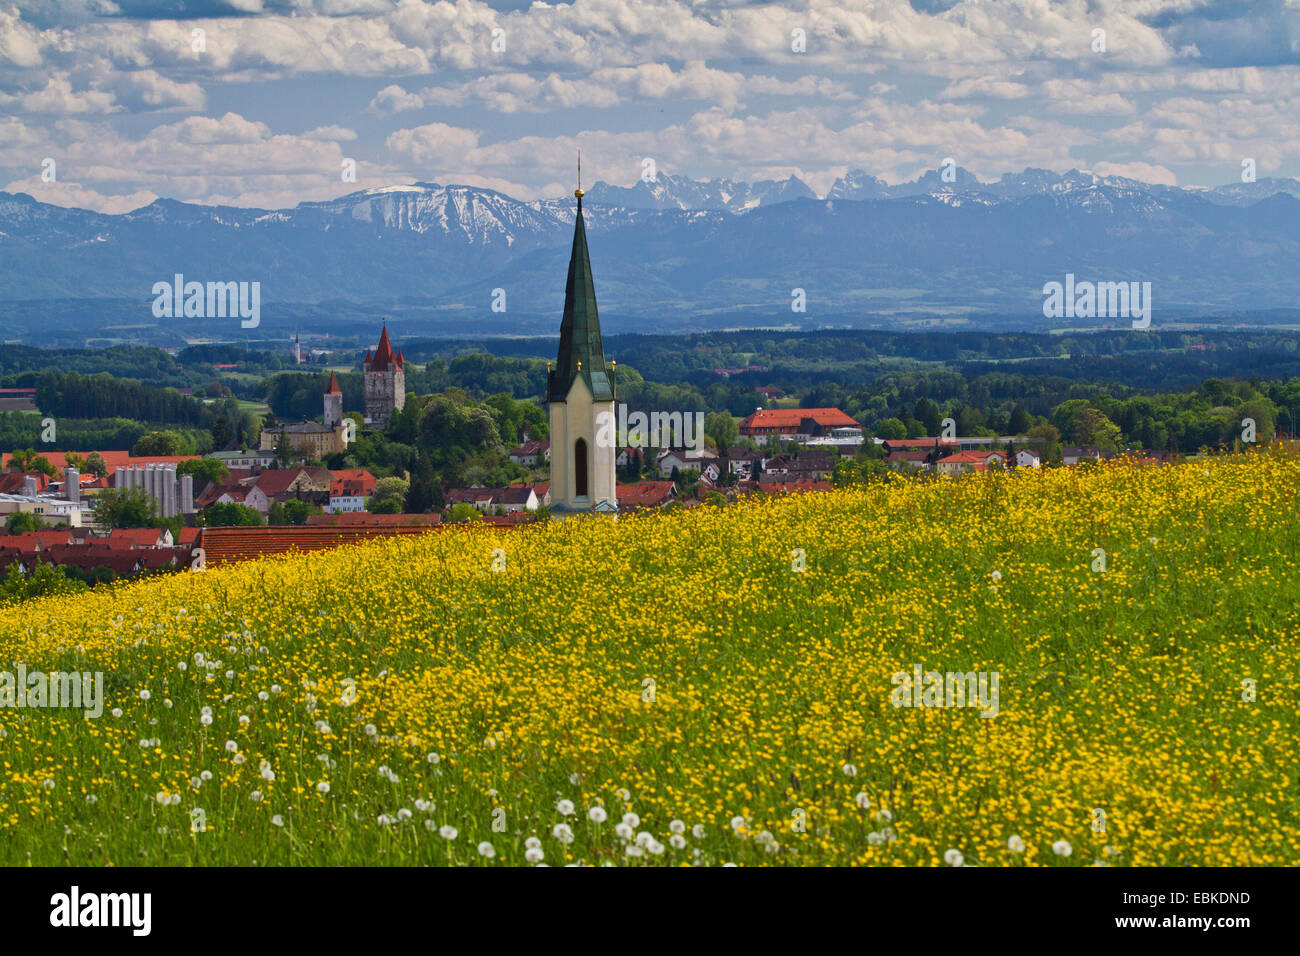 Alpine foothills, view over flower maedow, church and castle to the Alps, Germany, Bavaria, Haag - Stock Image